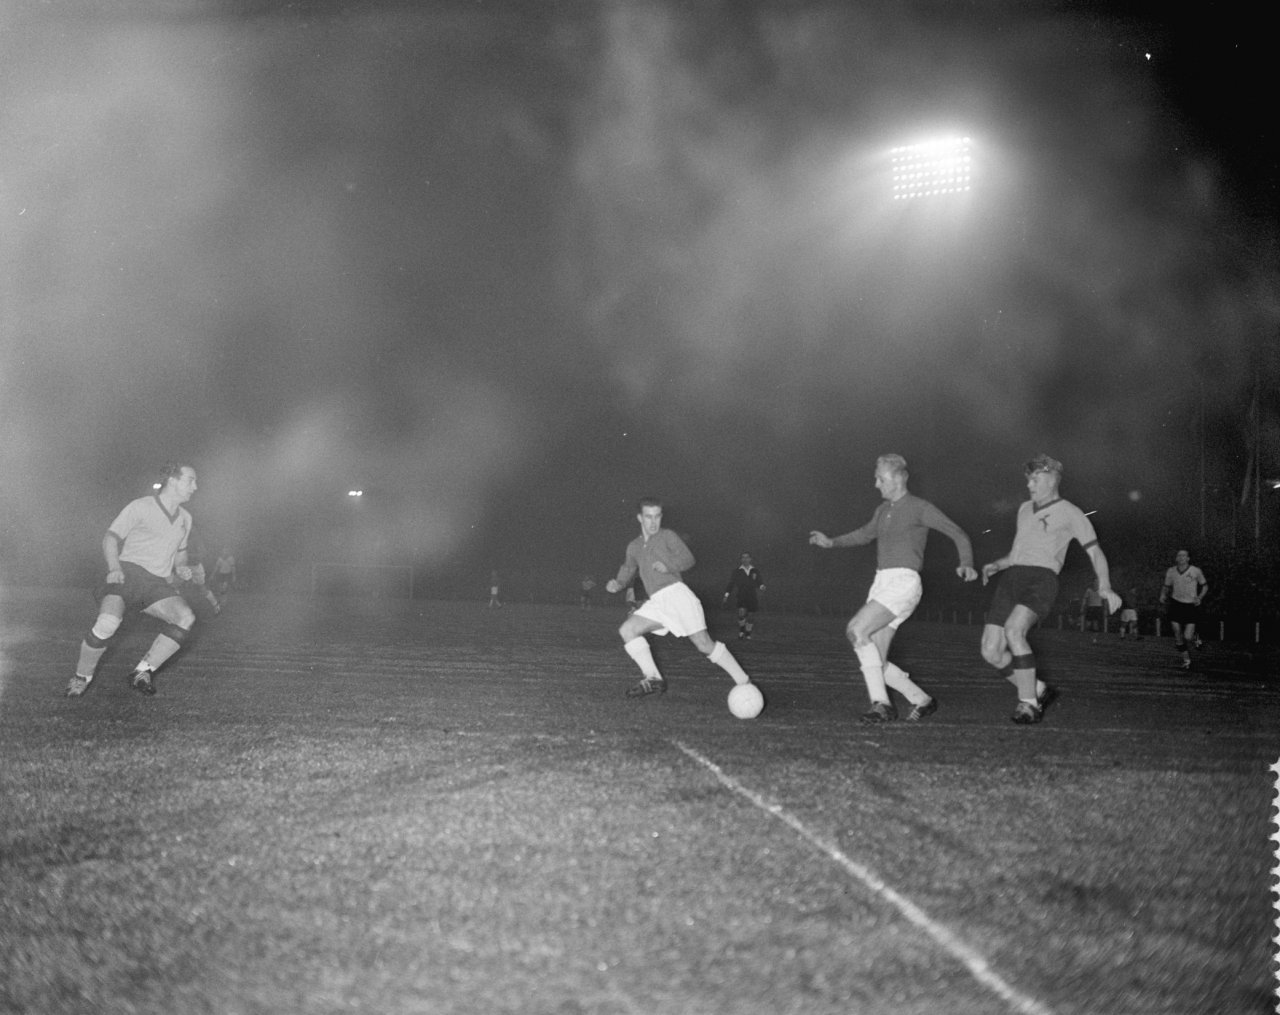 Dutch national team v South Africa (9-3), 12 November 1958, FASA